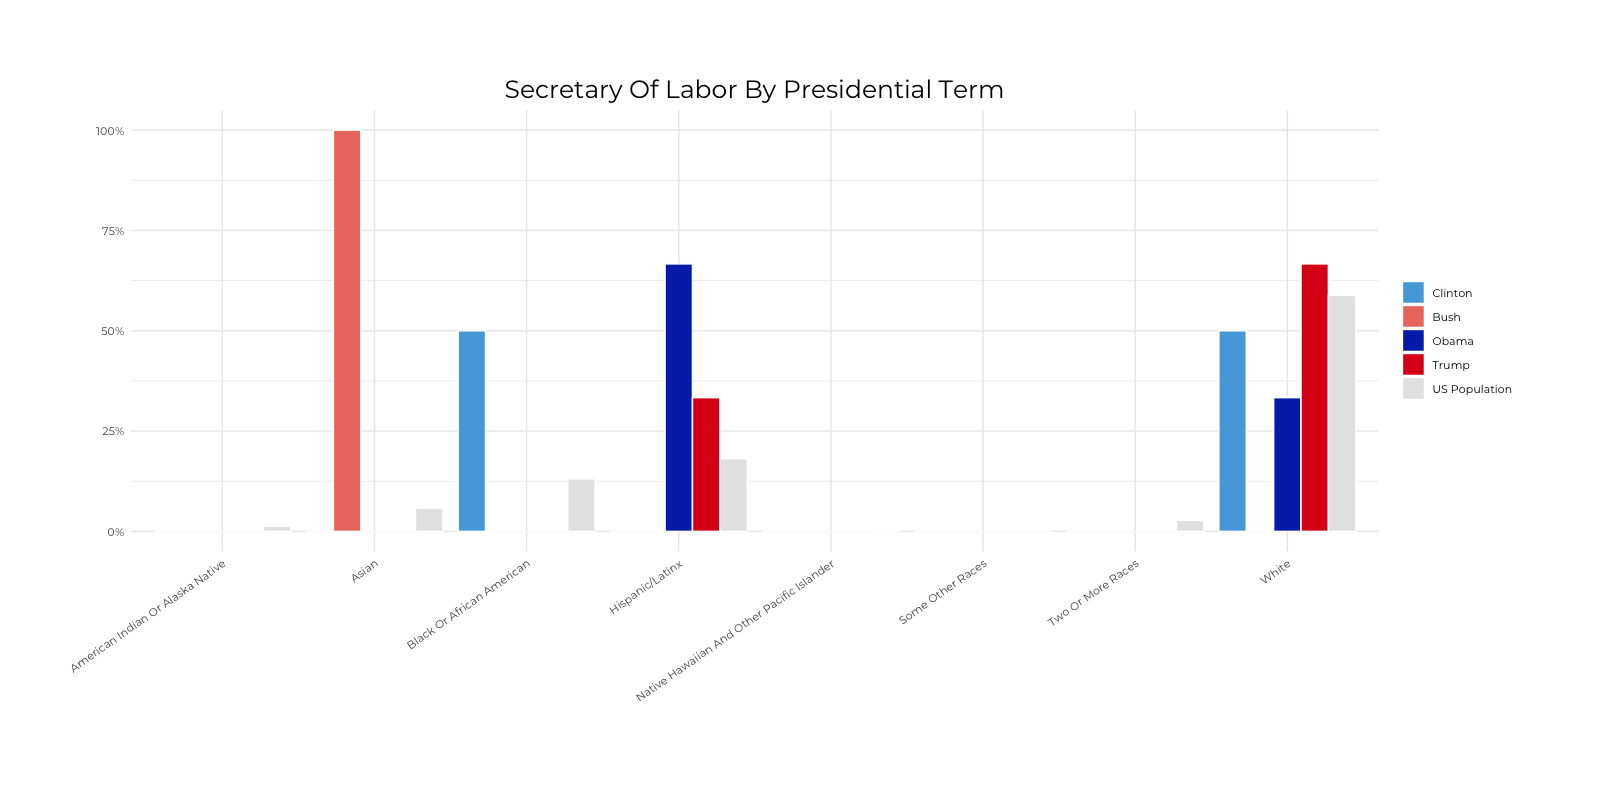 Graph about Racial Composition Comparison of Secretary of Labor by Presidential Terms. More detailed text description below.